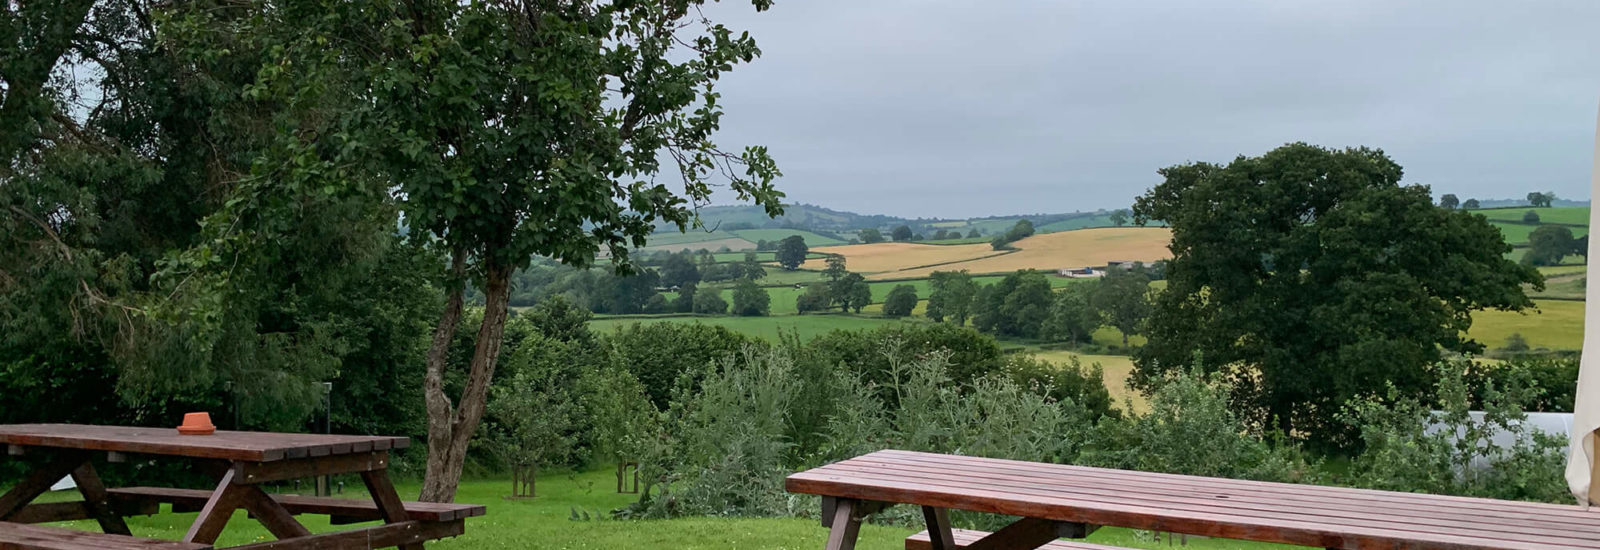 Image of The Pony & Trap Chew Magna